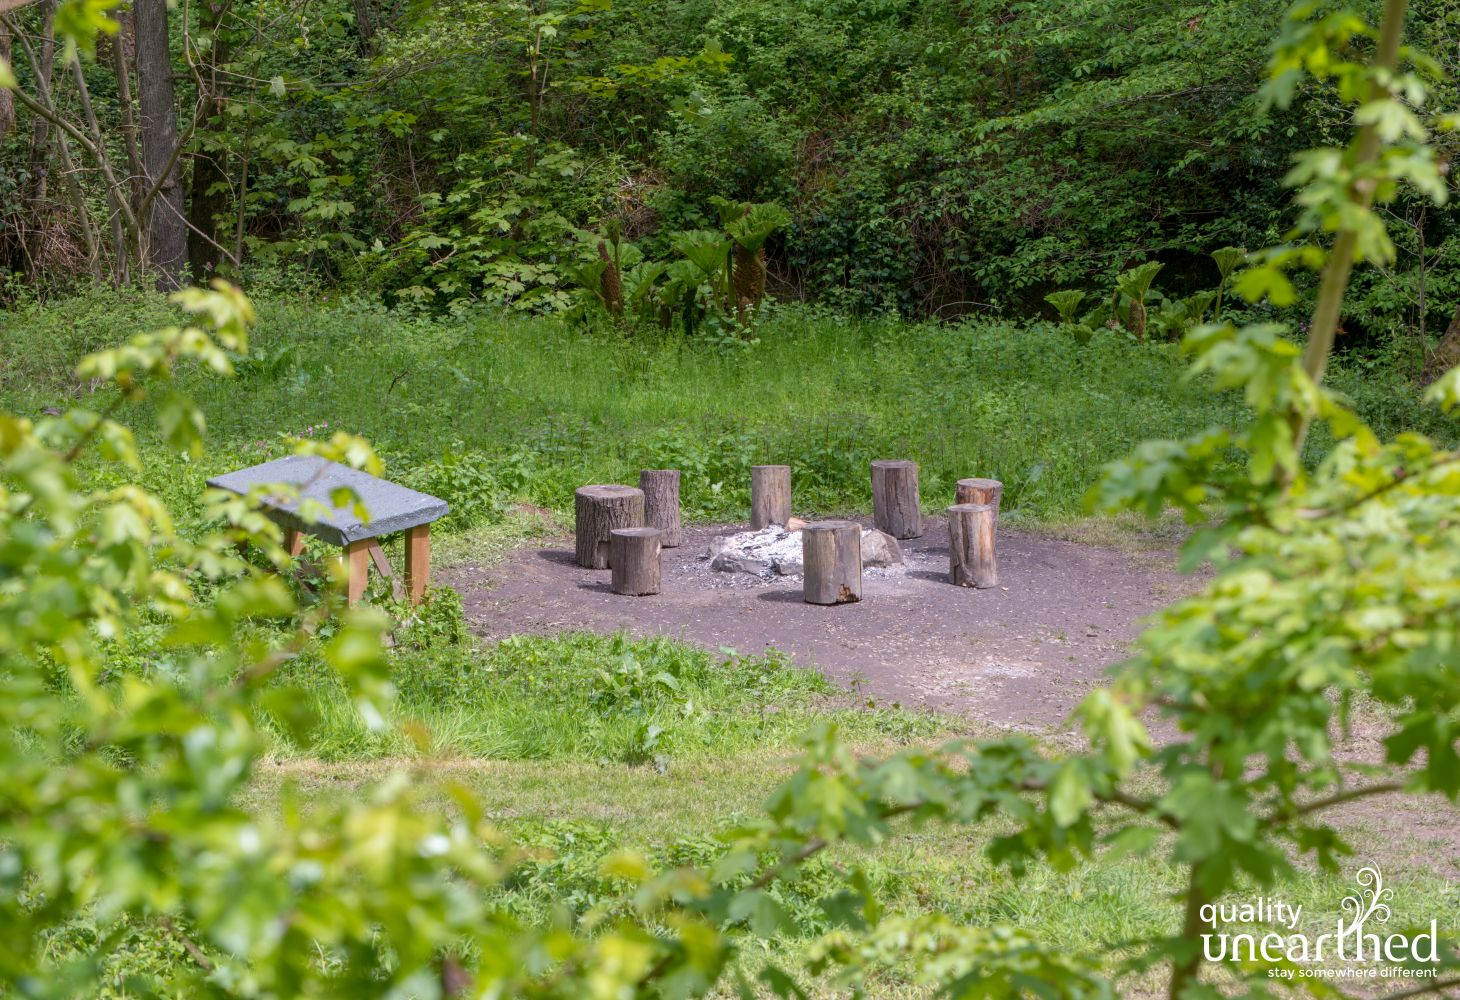 There is a communal fire pit, perfect for a group glamping holiday